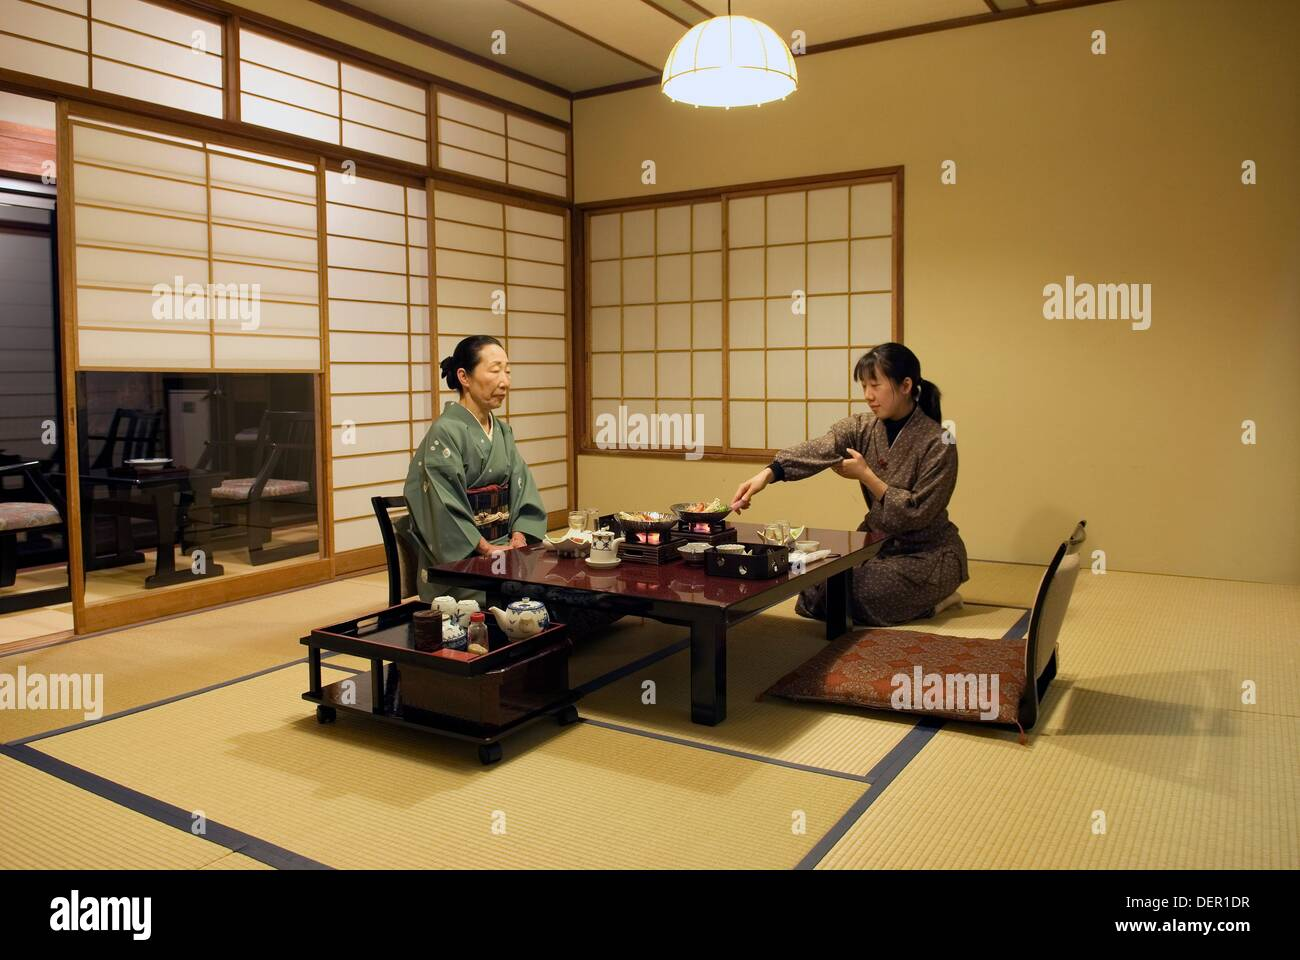 Traditional Japanese Bedroom waitress serving evening meal in bedroom in a traditional japanese